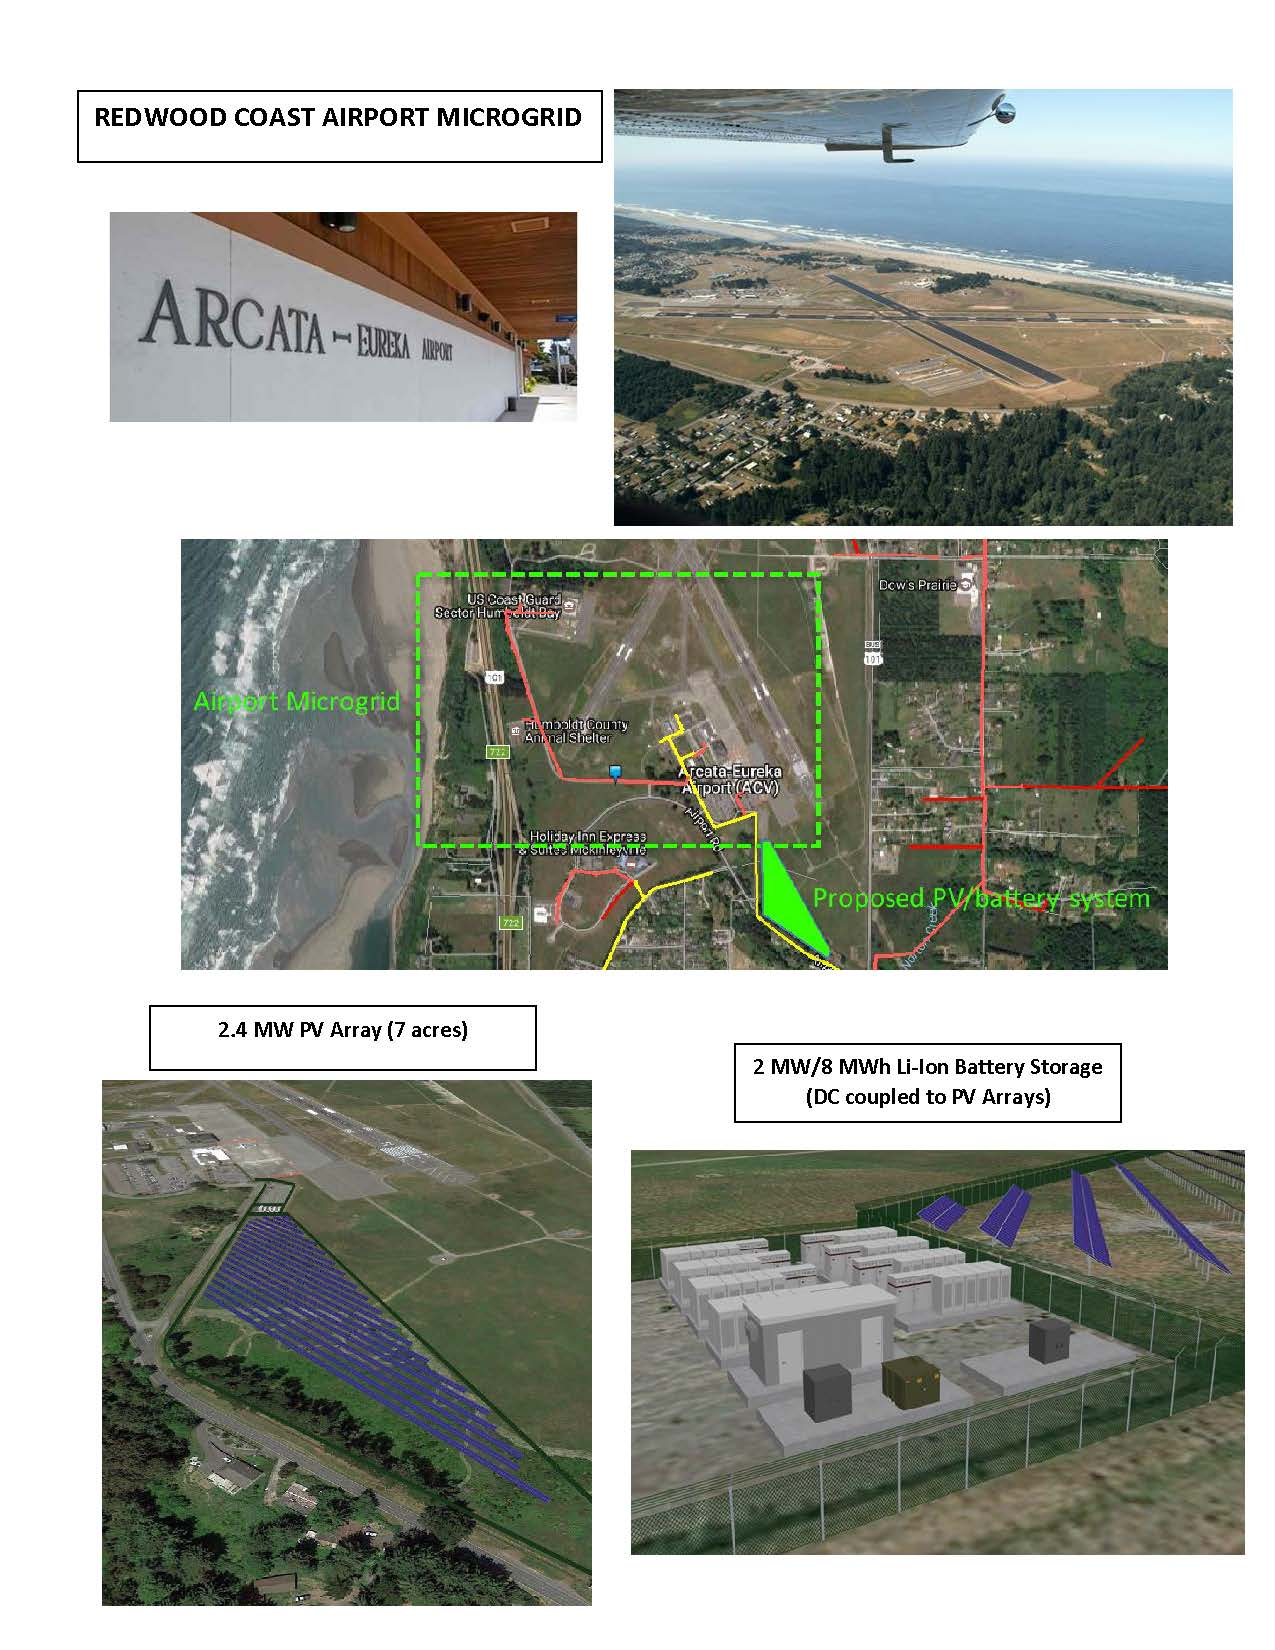 Redwood Coast Airport Microgrid